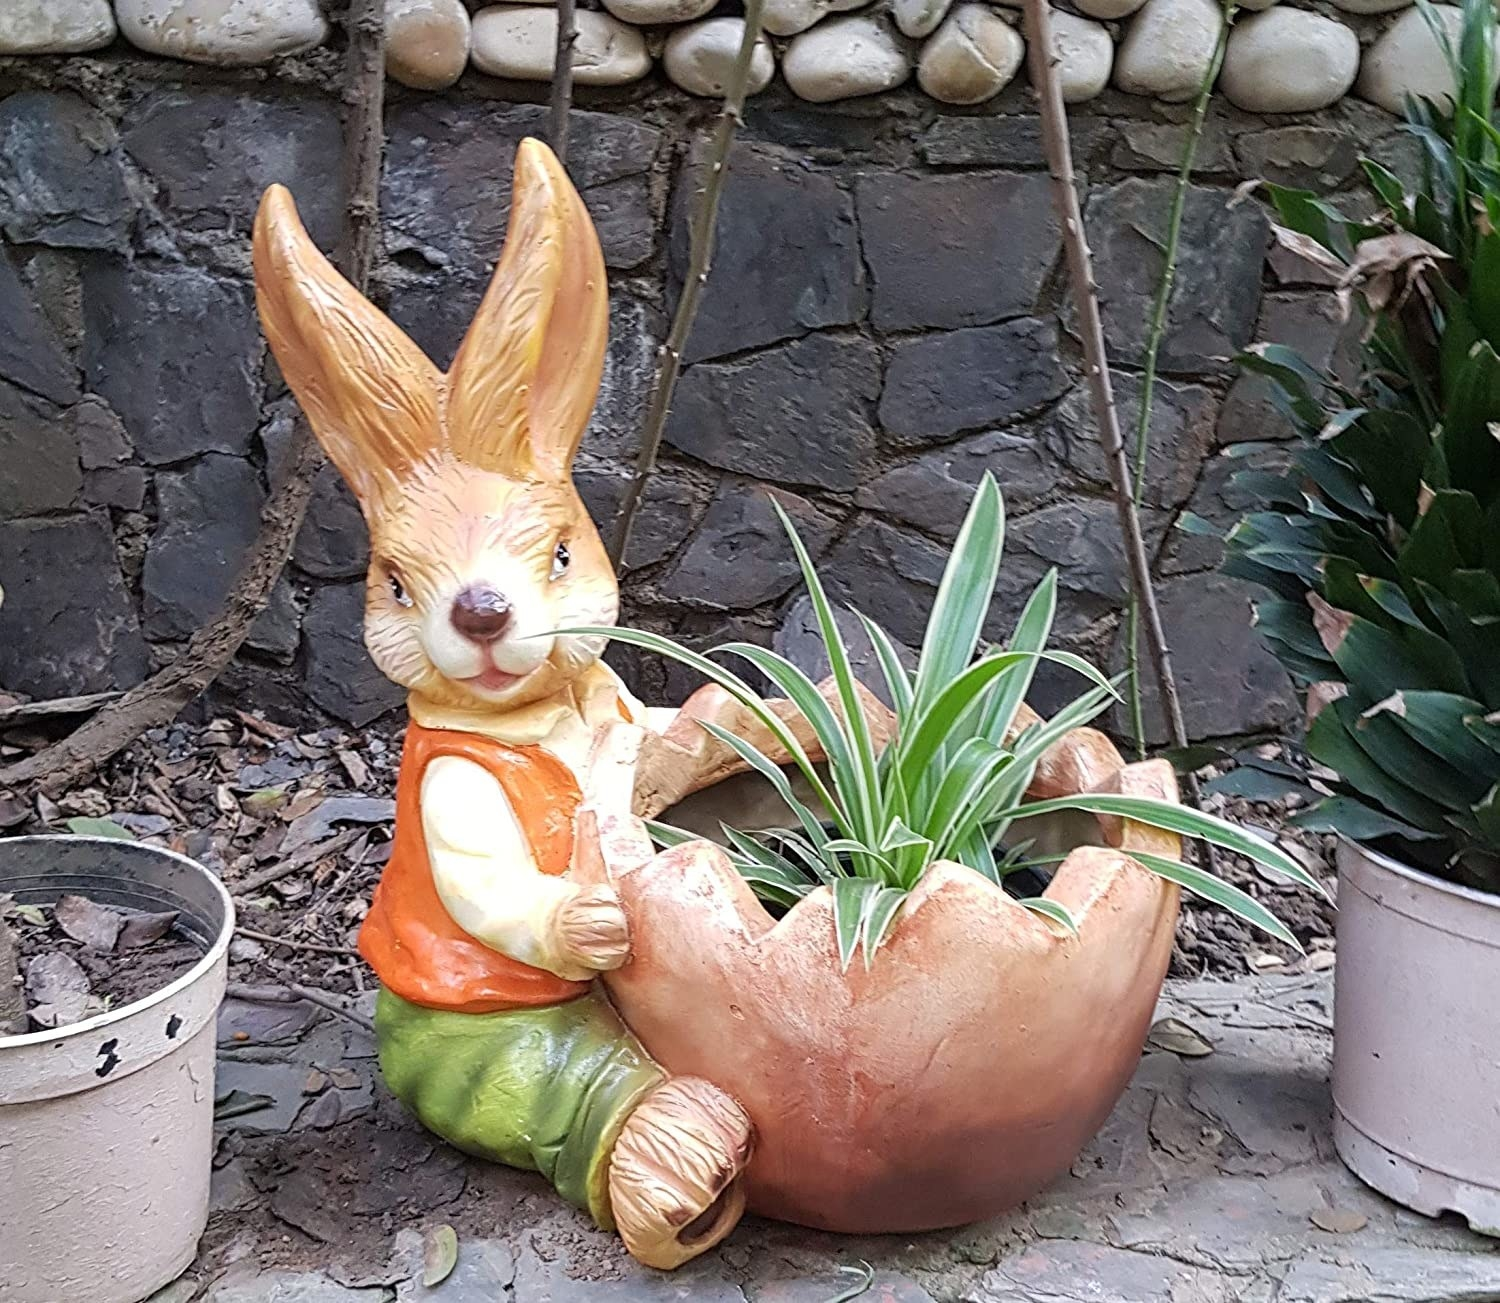 A planter in the shape of a bunny hugging a pot.